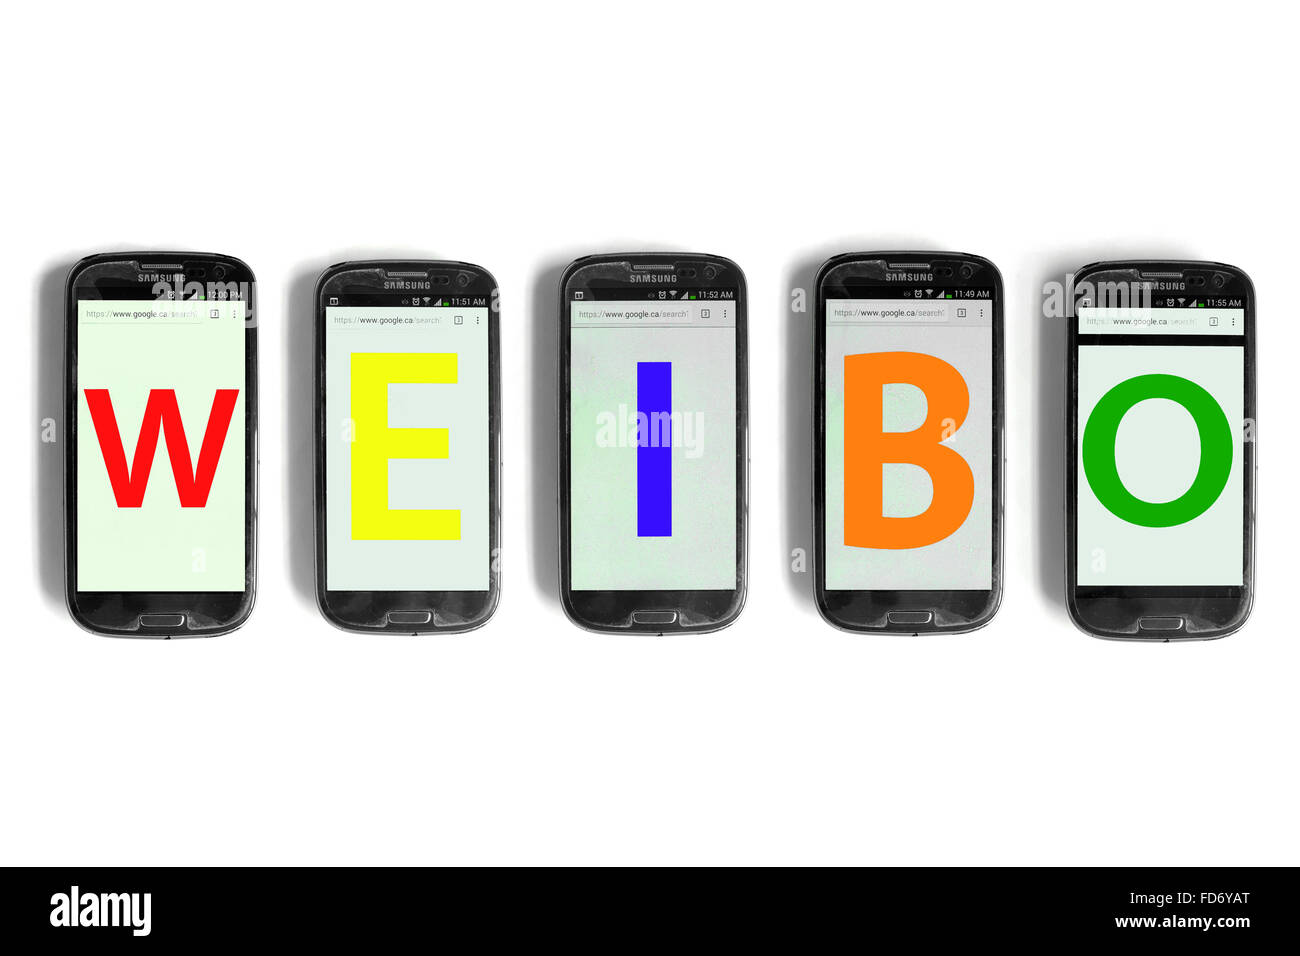 Weibo spelled on the screens of smartphones photographed against a white background. - Stock Image